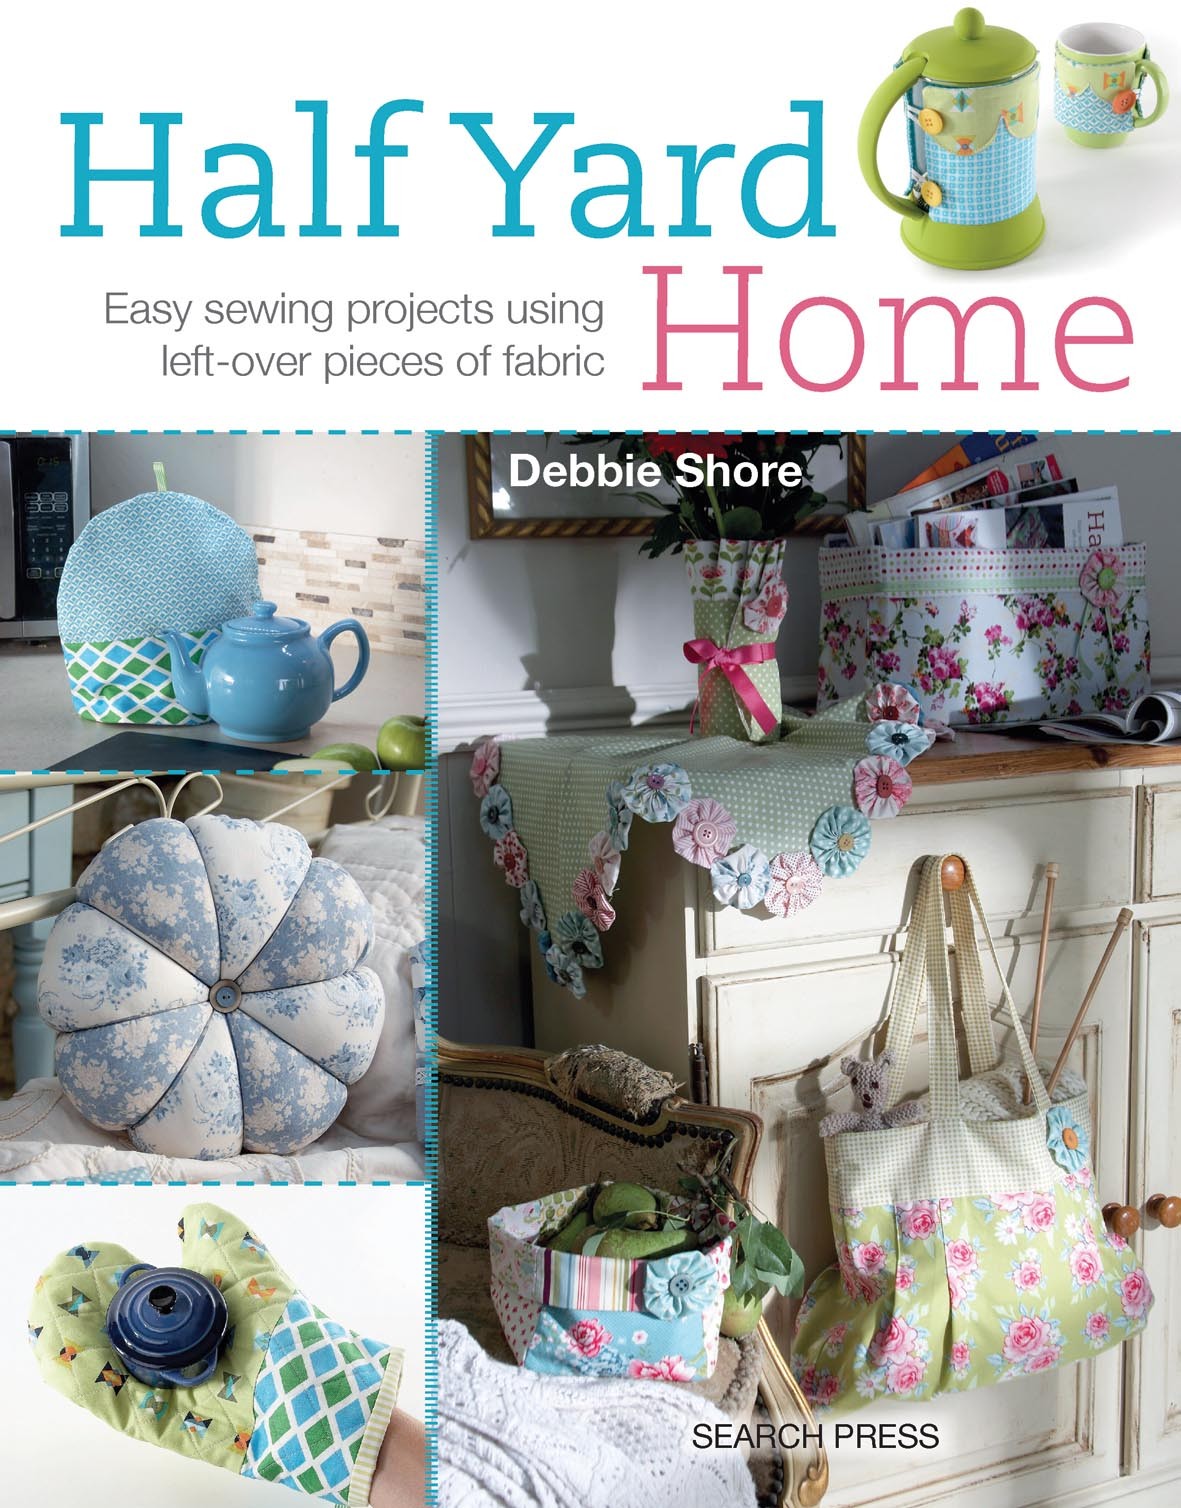 HALF YARD HOME : EASY SEWING PROJECTS USING LEFT-OVER PIECES OF FABRIC